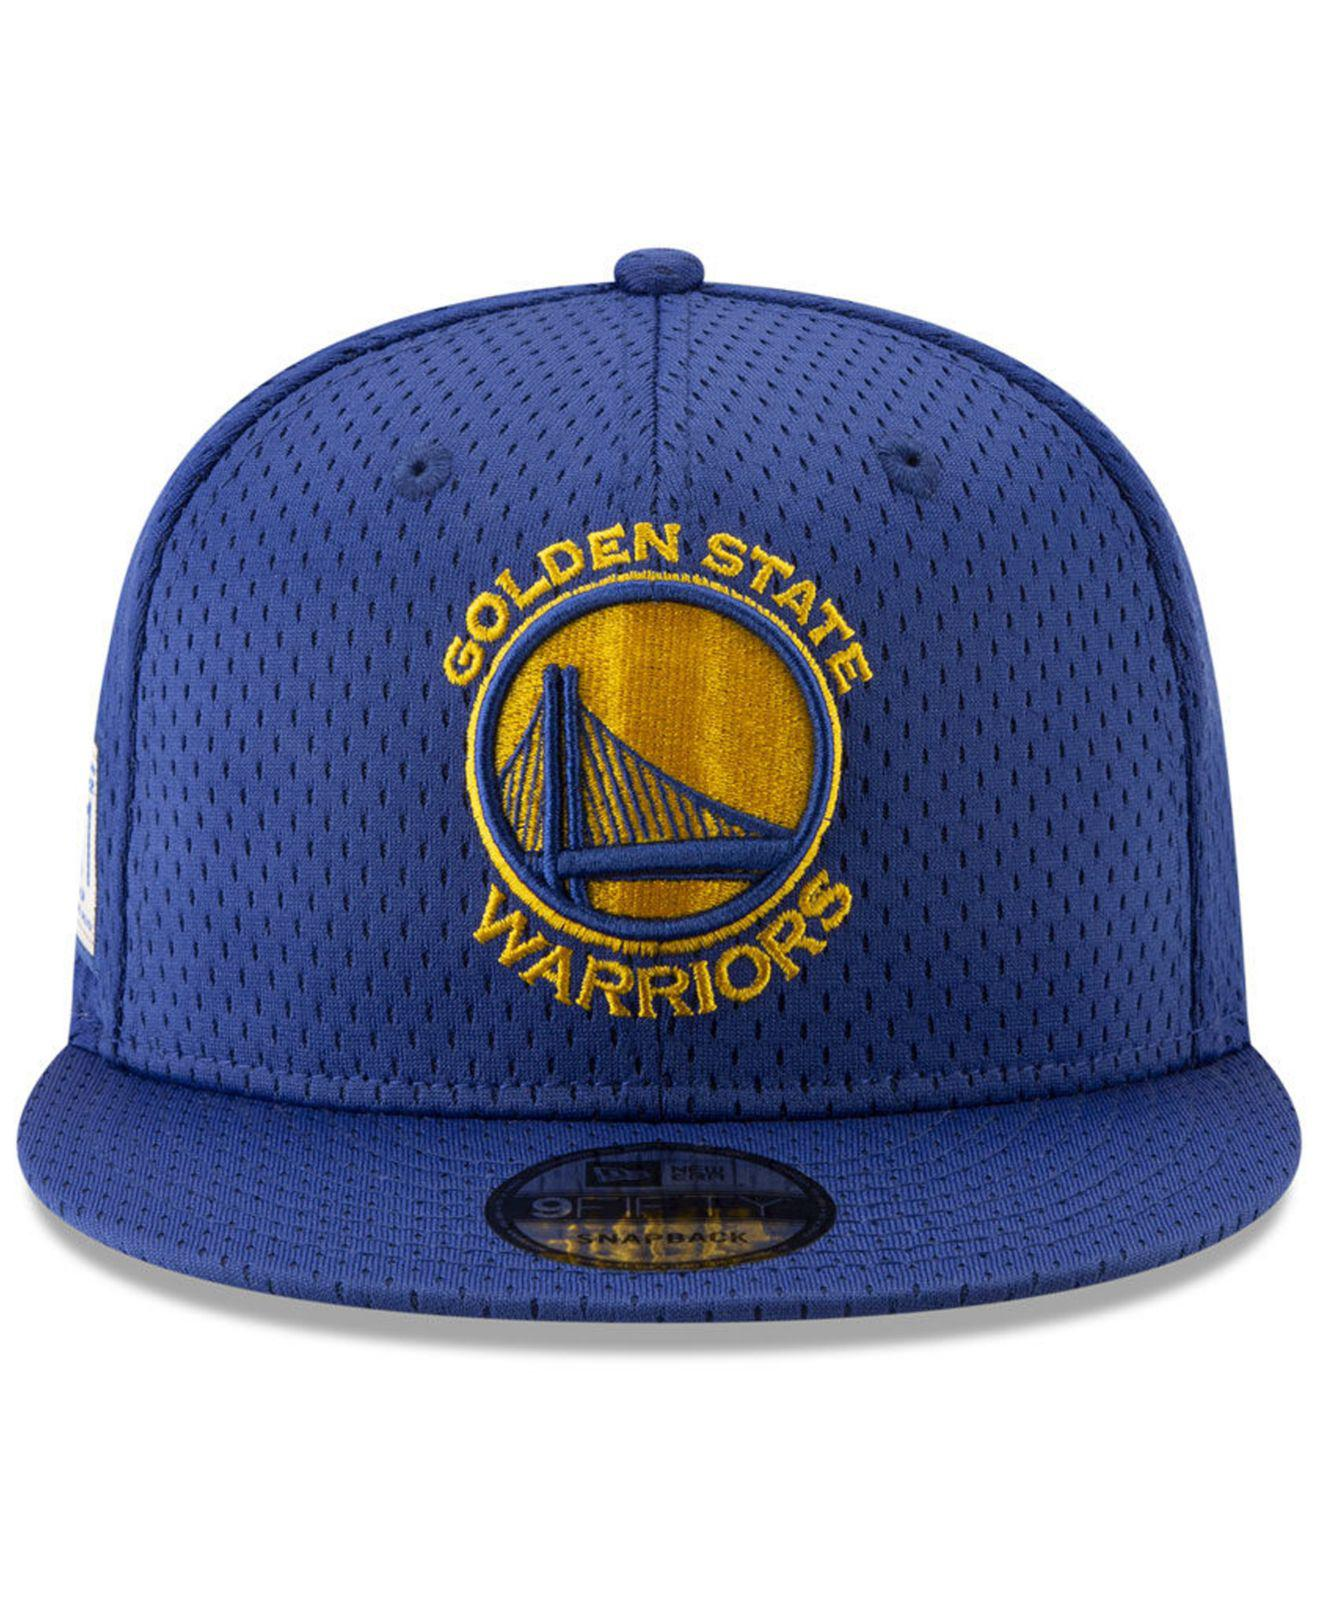 1696b74a3 ... greece lyst ktz golden state warriors jock tag 9fifty snapback cap in  blue for men 622e3